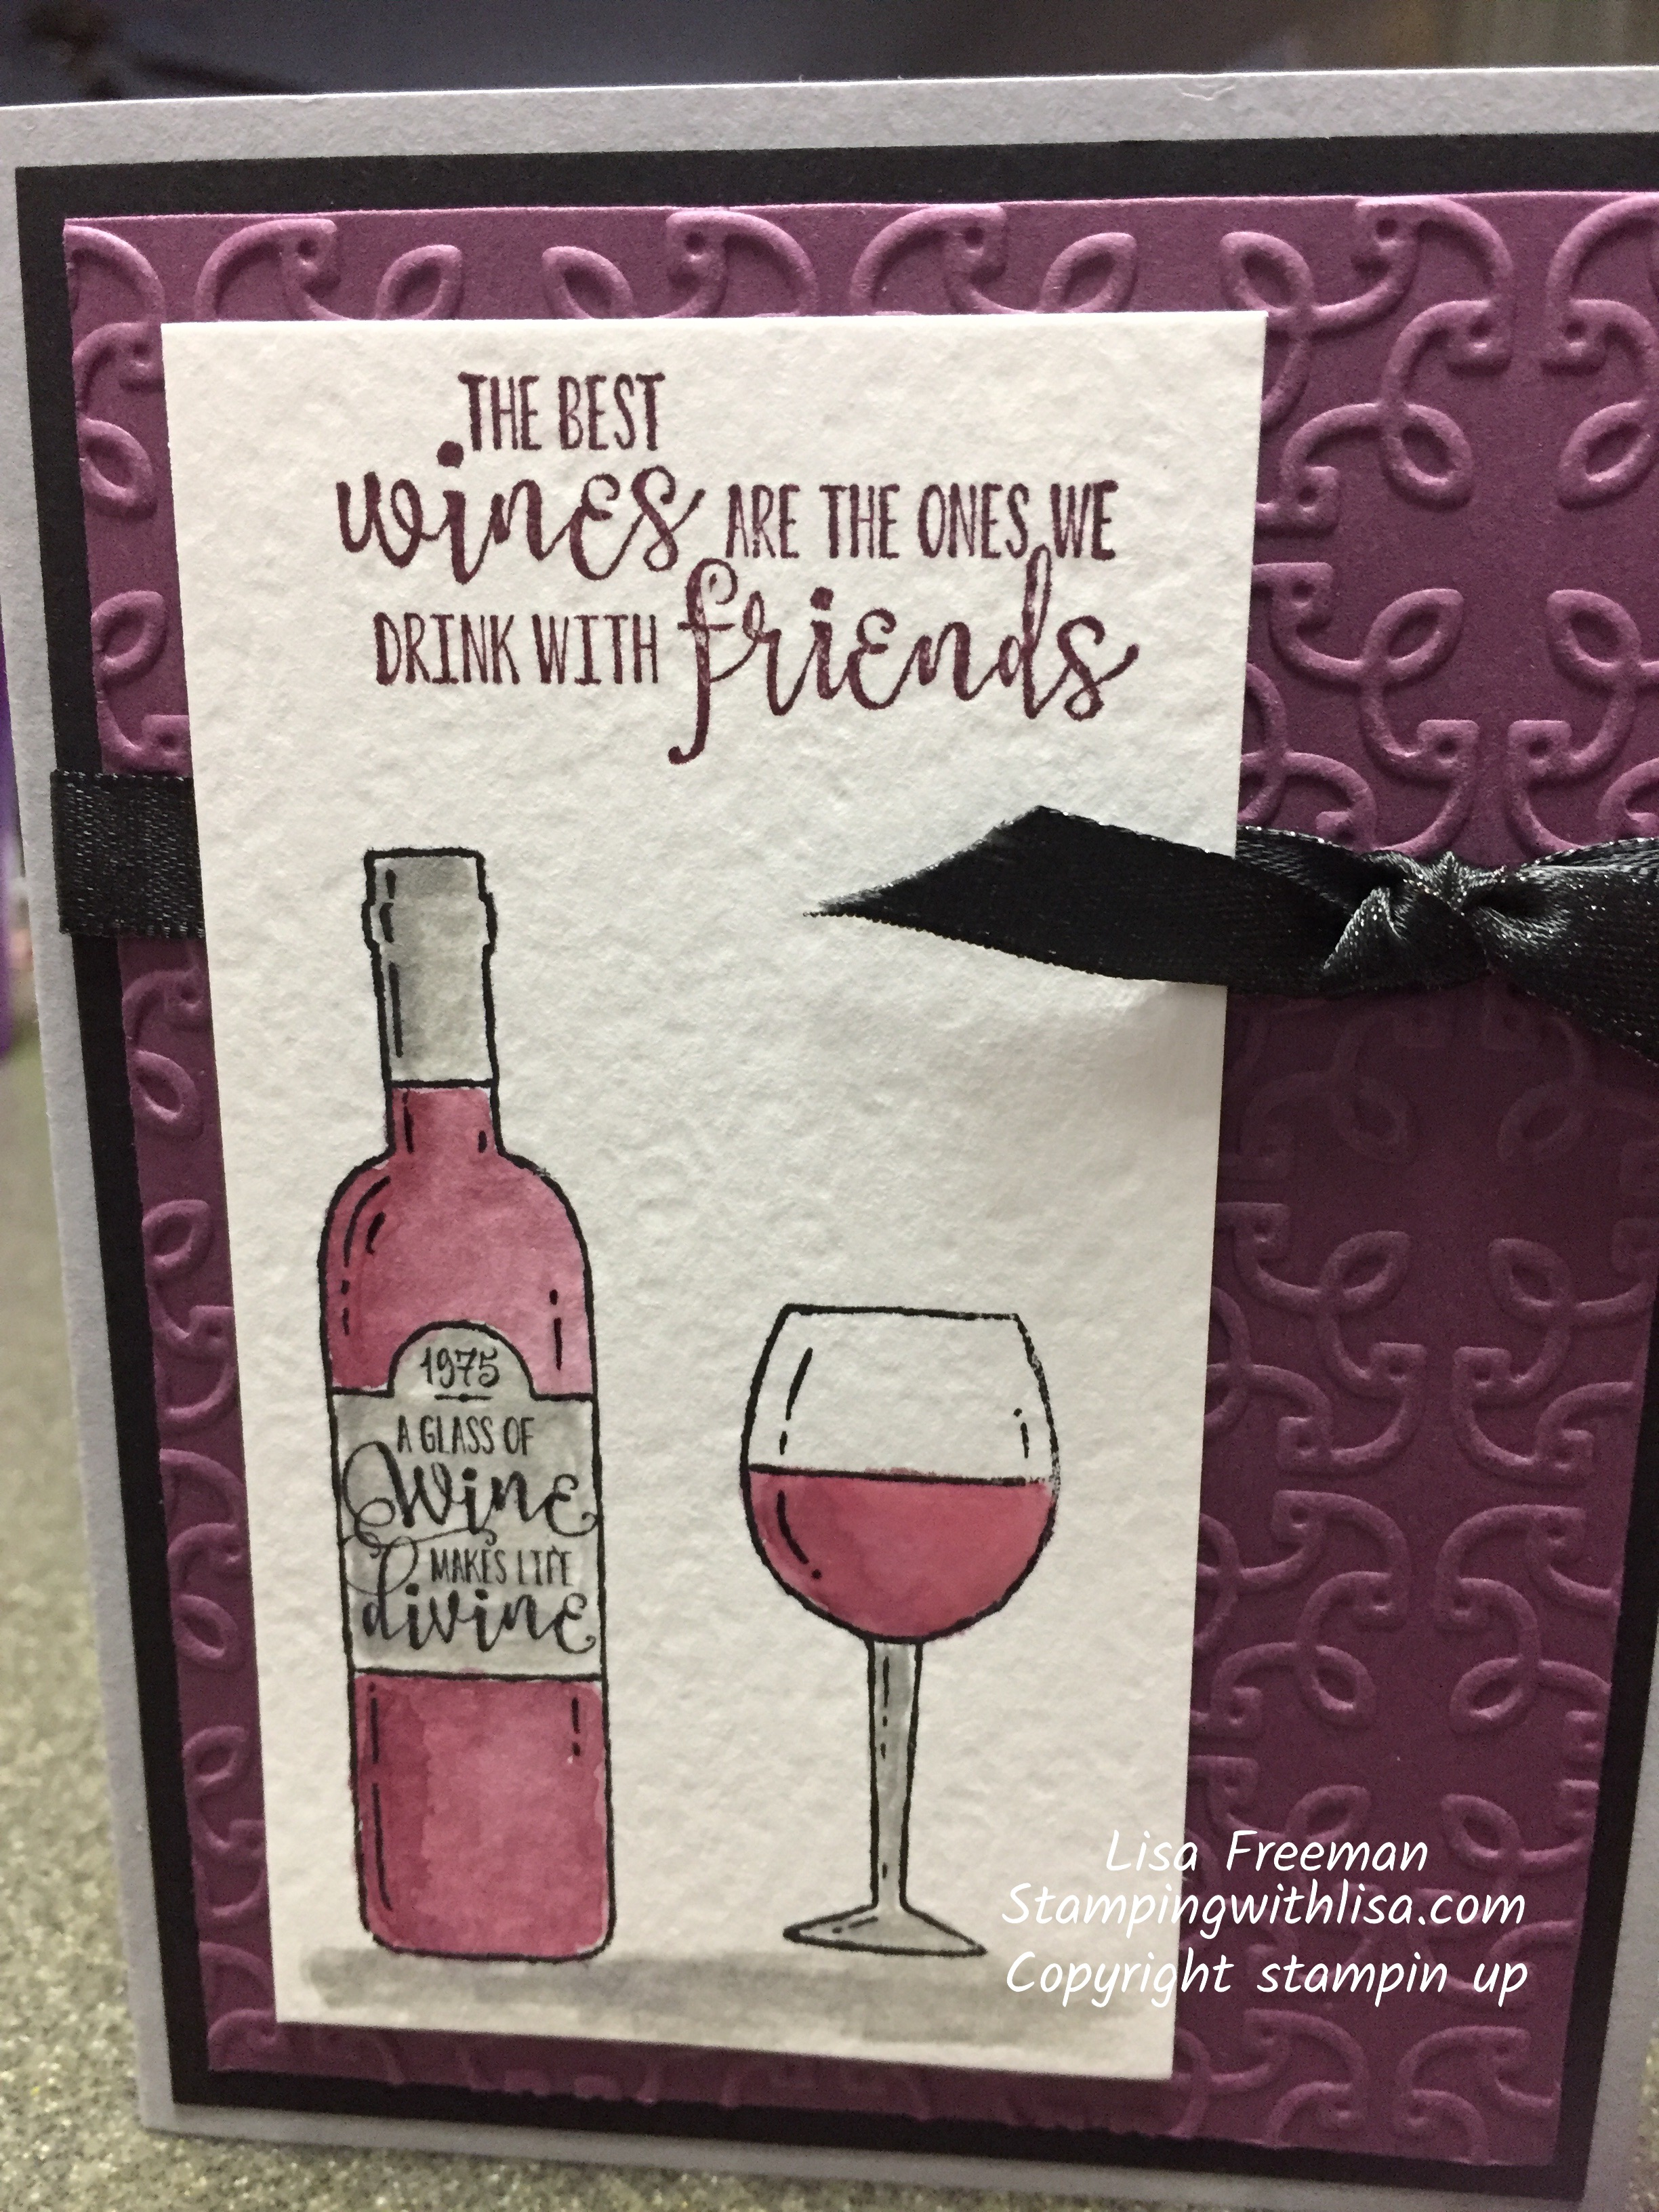 From Hot Chocolate to Wine!